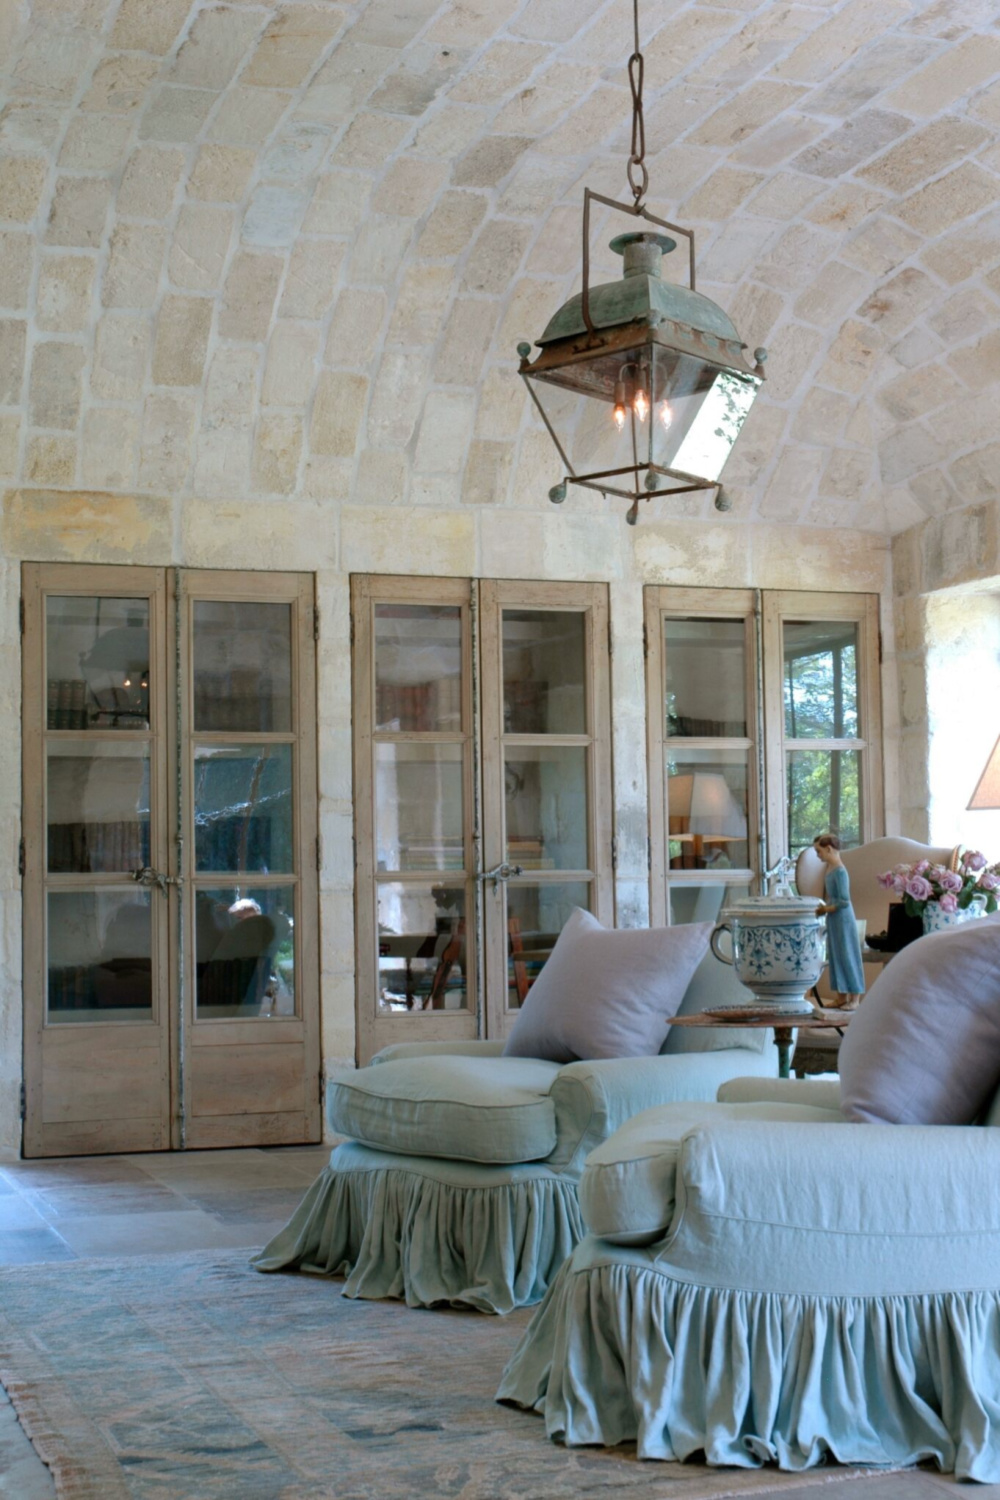 Three pairs of 18th century French doors, barrel vaulted ceiling clad in 17th century stone from a French Vineyard, and blissful upholstered pieces grace Ruth Gay's office.#chateaudomingue #antiques #frenchcountry #frenchfarmhouse #lantern #limestone #oldworld